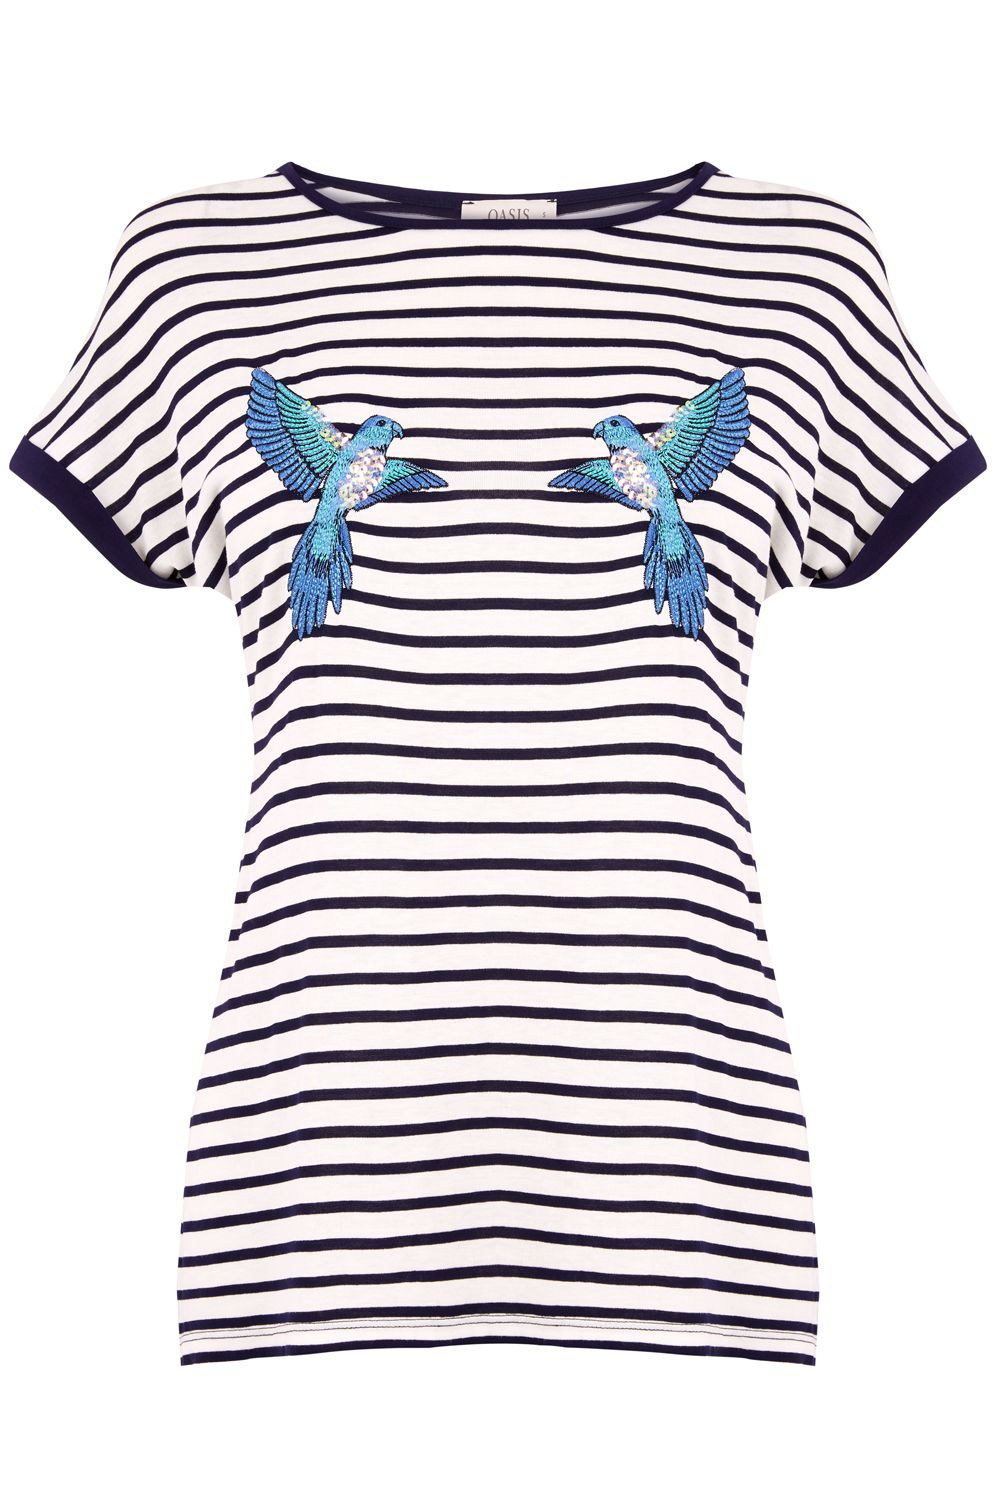 Oasis ZSL PARAKEET STRIPE TEE, Multi-Coloured